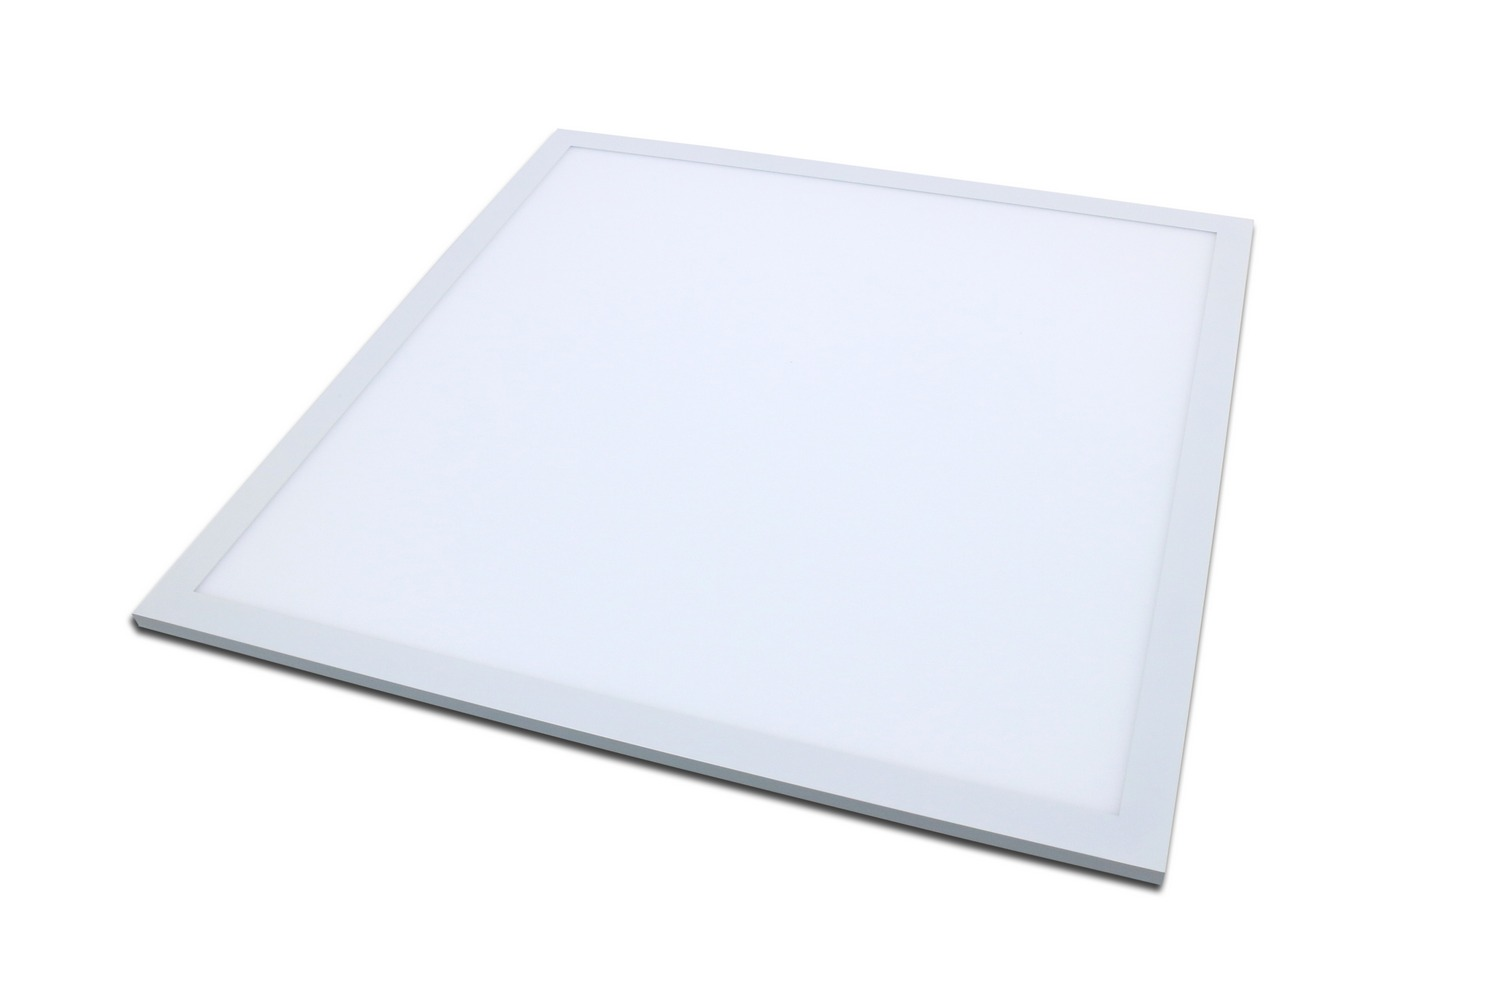 CCT LED panel 60x60 dimmable edge-lit panel 600x600 ultra-thin led flat panel light 1